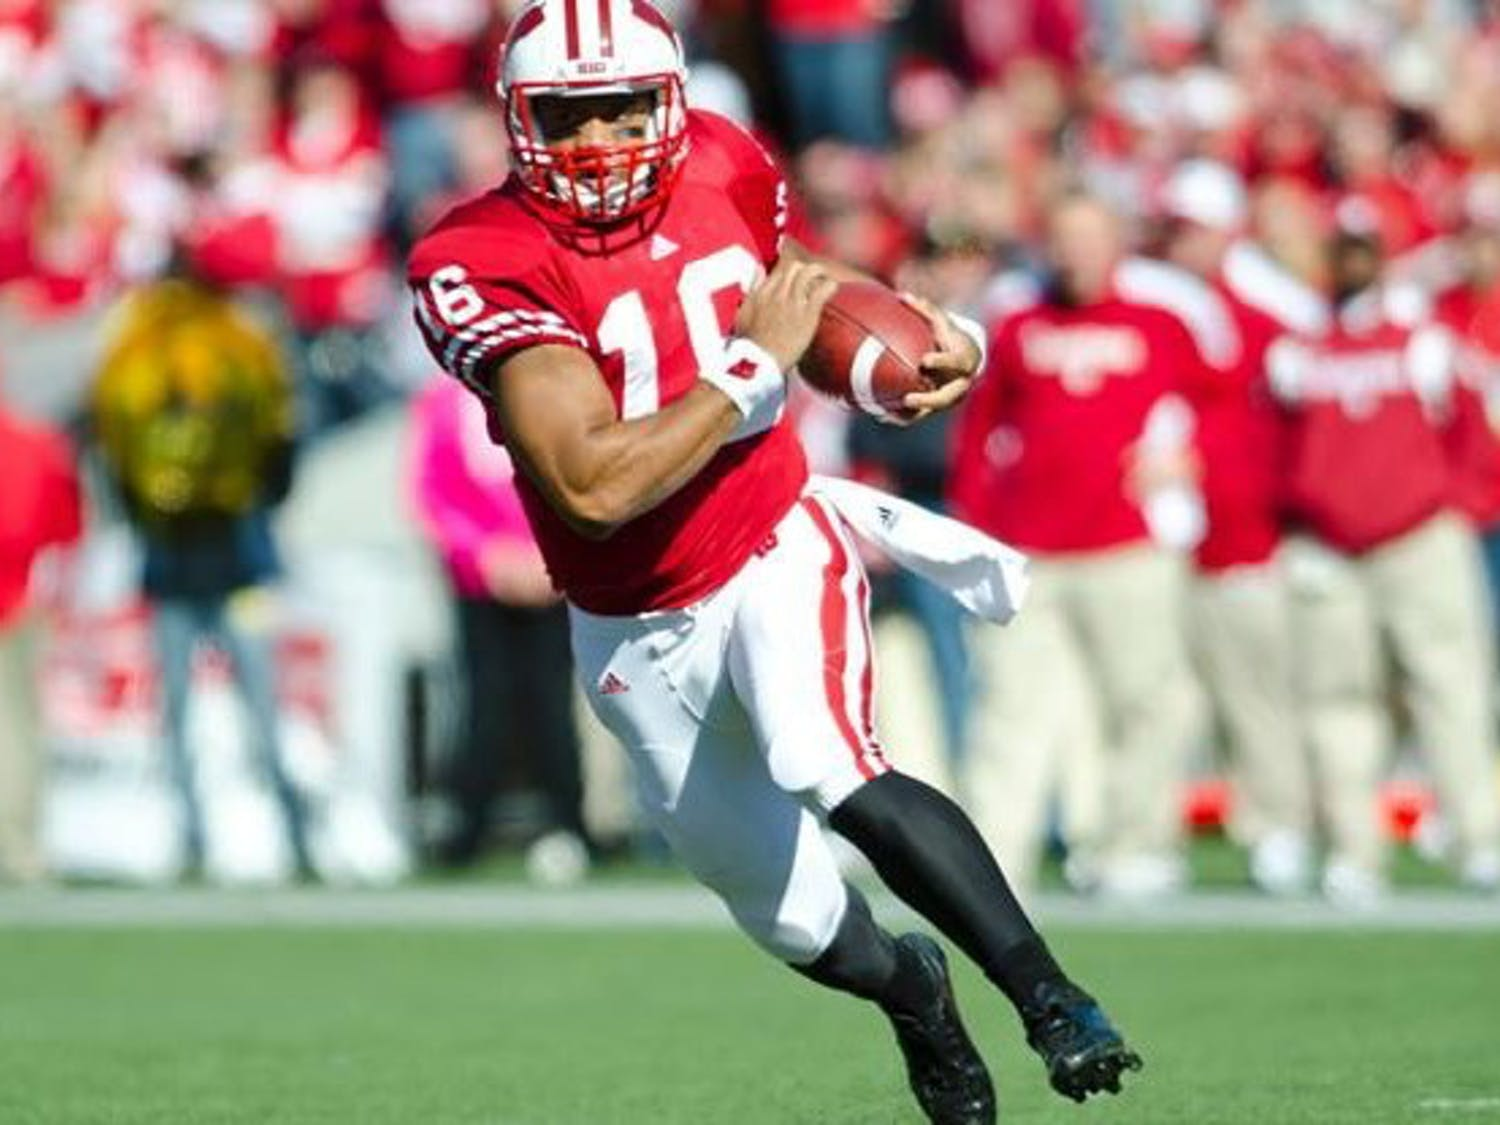 Even in the days of Russell Wilson, Wisconsin football fell apart when it mattered most.